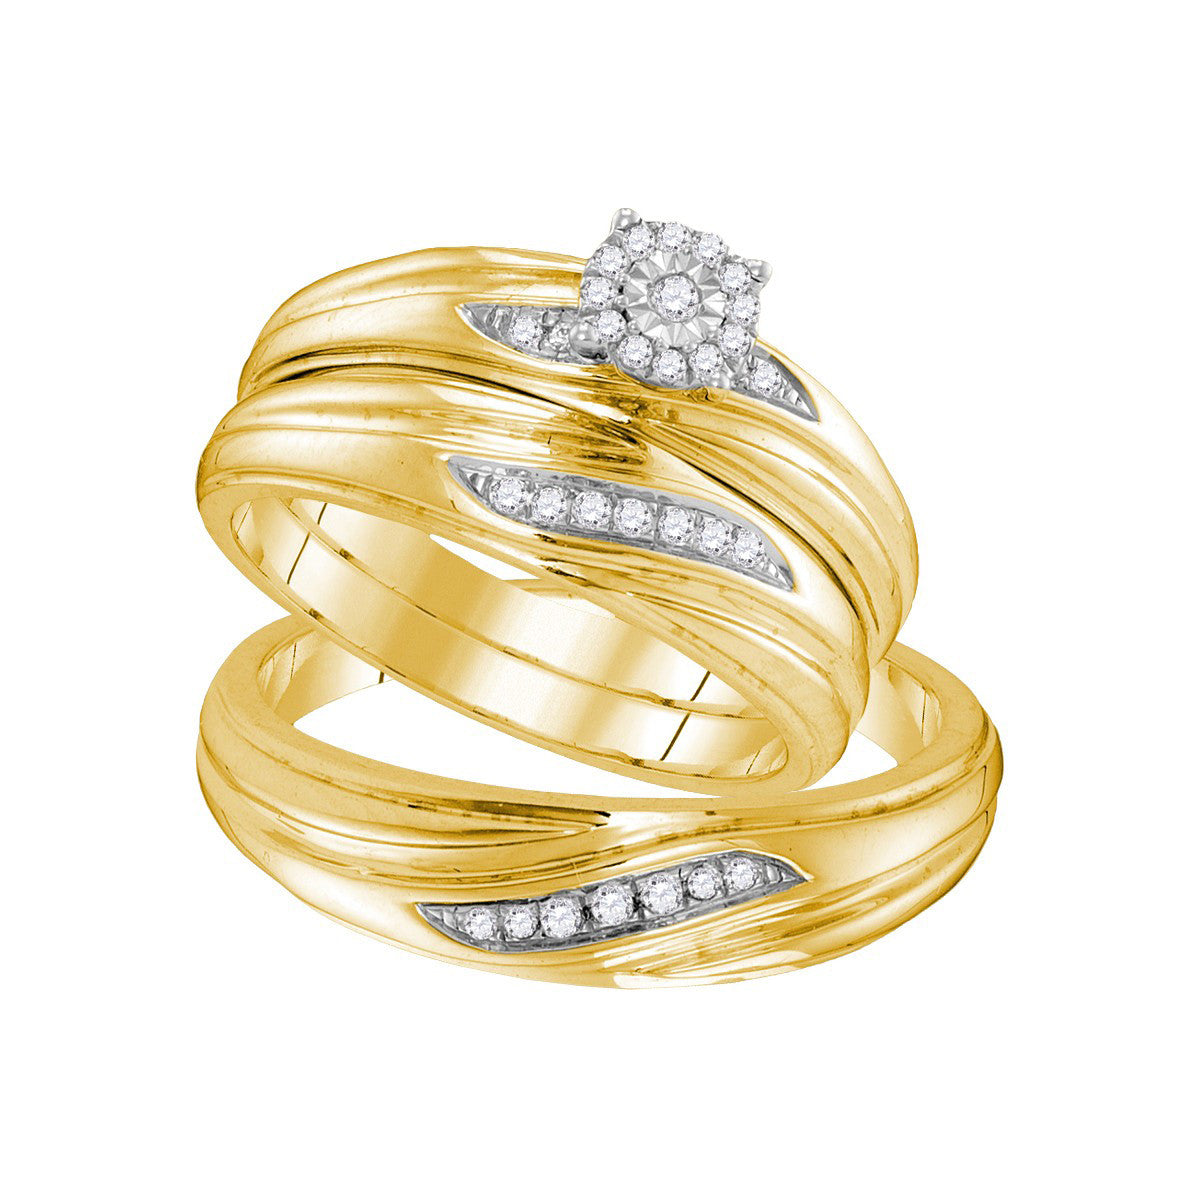 Yellow-tone Sterling Silver His & Hers Round Diamond Solitaire Matching Bridal Wedding Ring Band Set 1/5 Cttw 105809 - shirin-diamonds